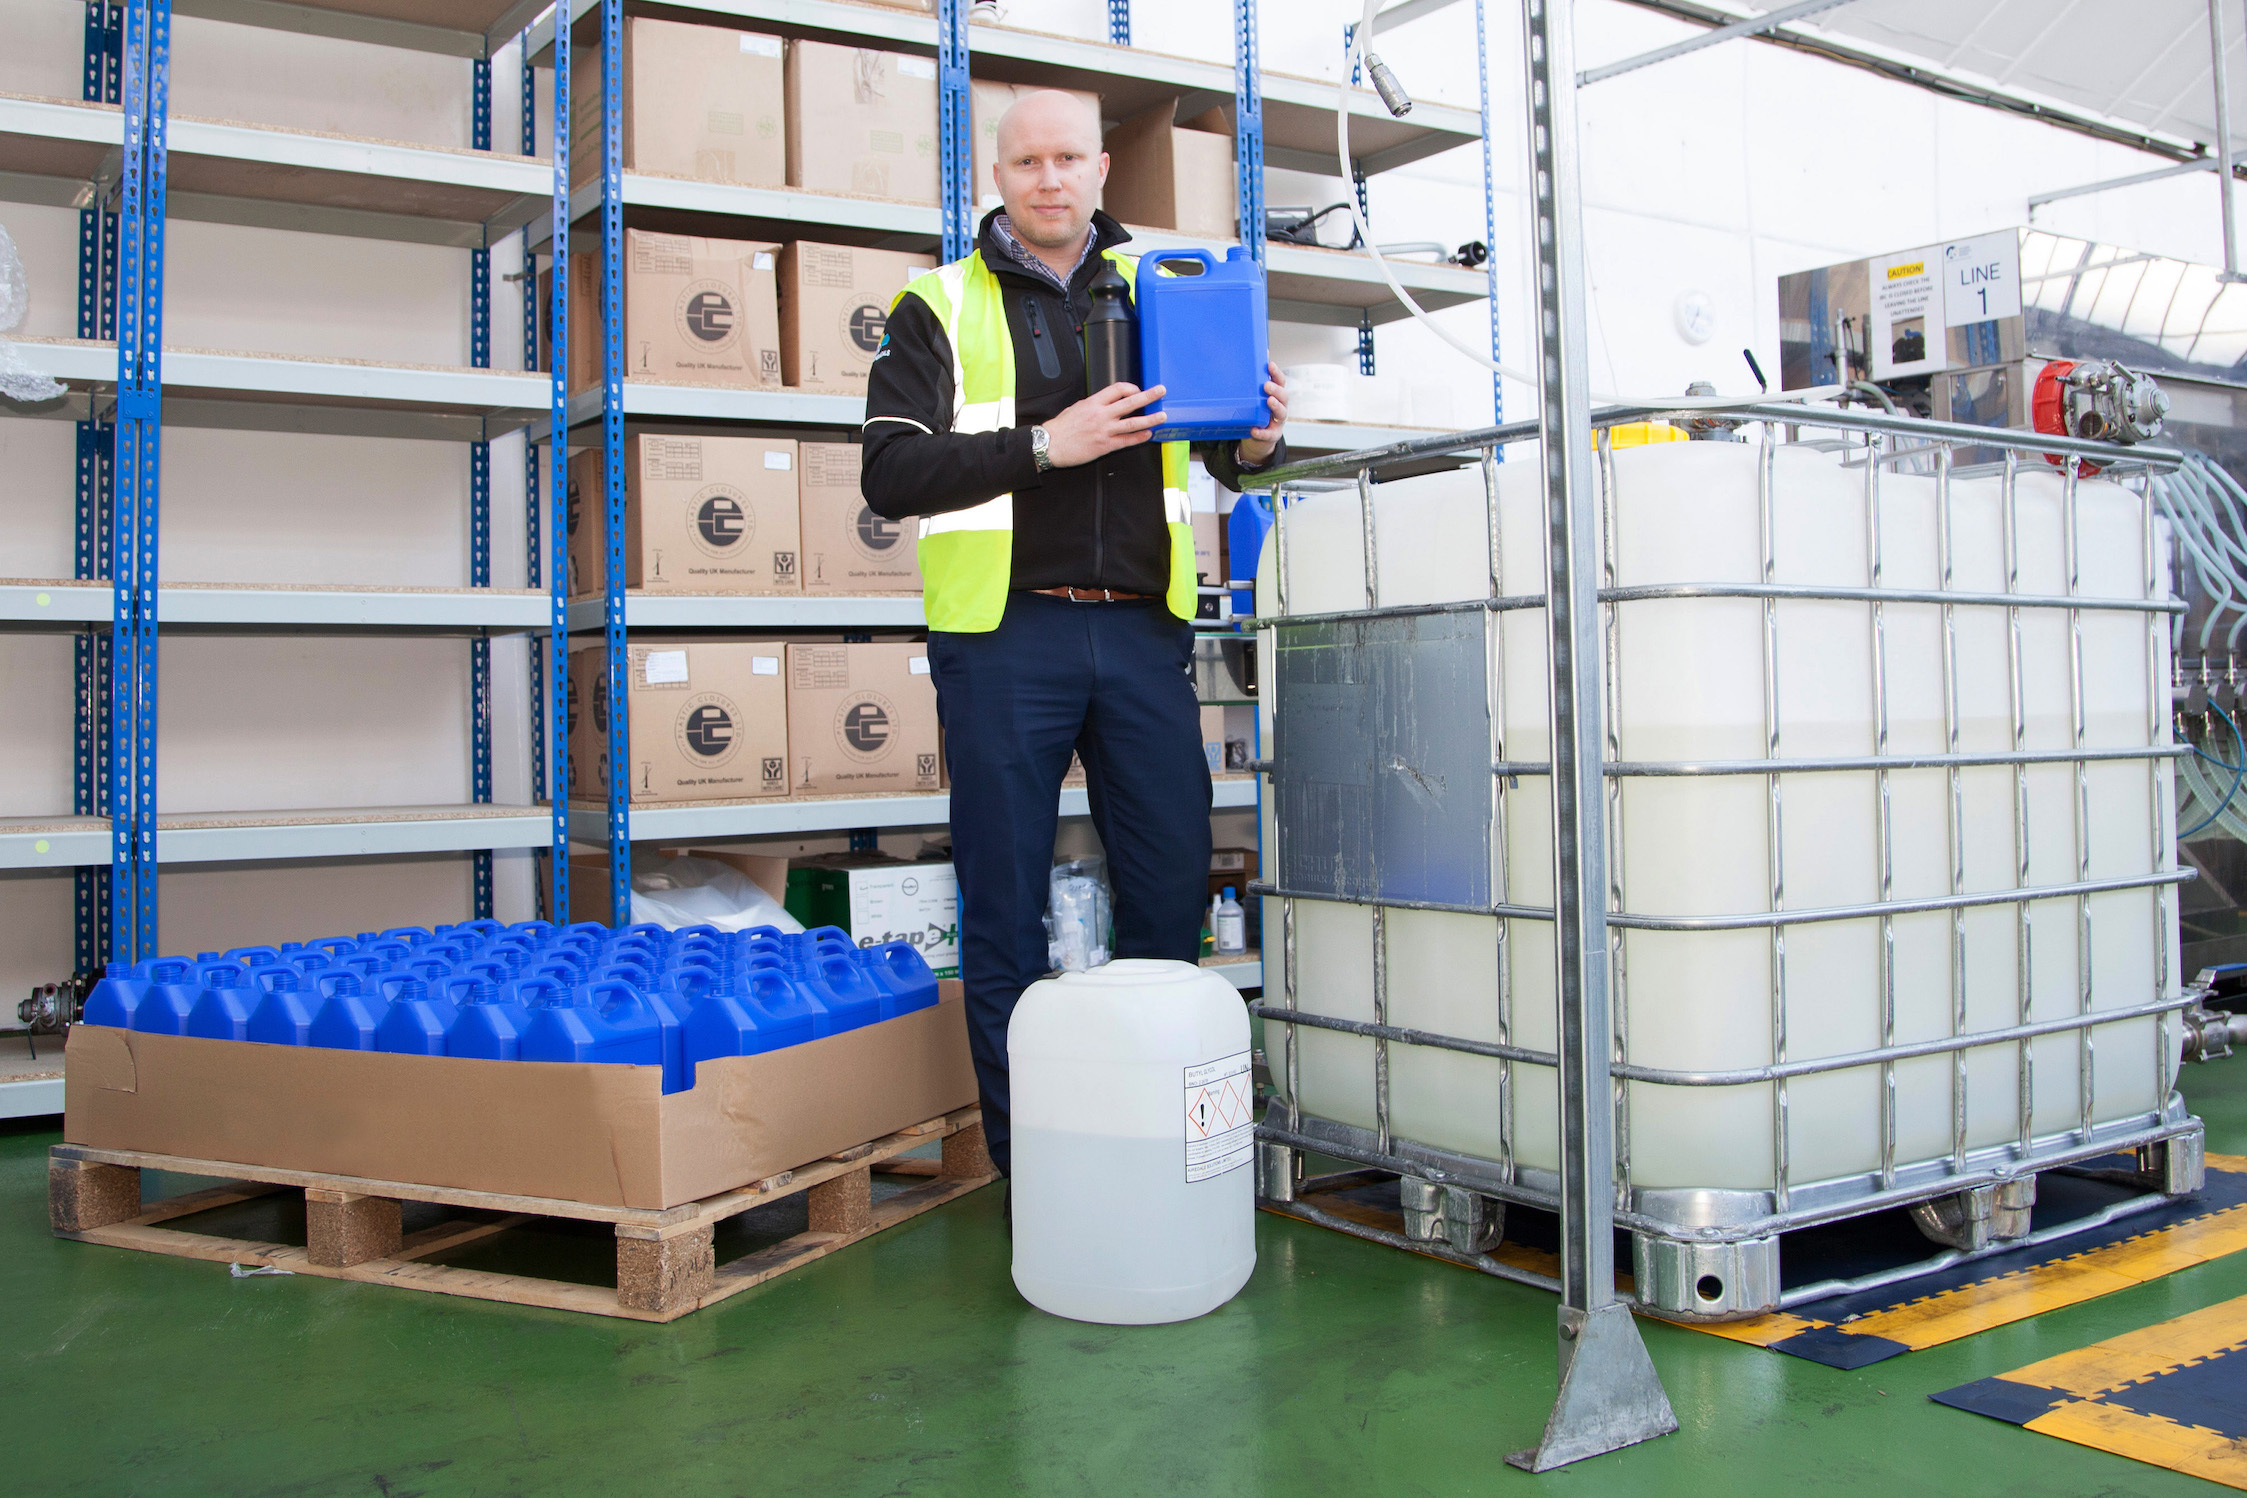 Daniel Marr, of Airedale Chemical, with the smaller industrial chemical packaging